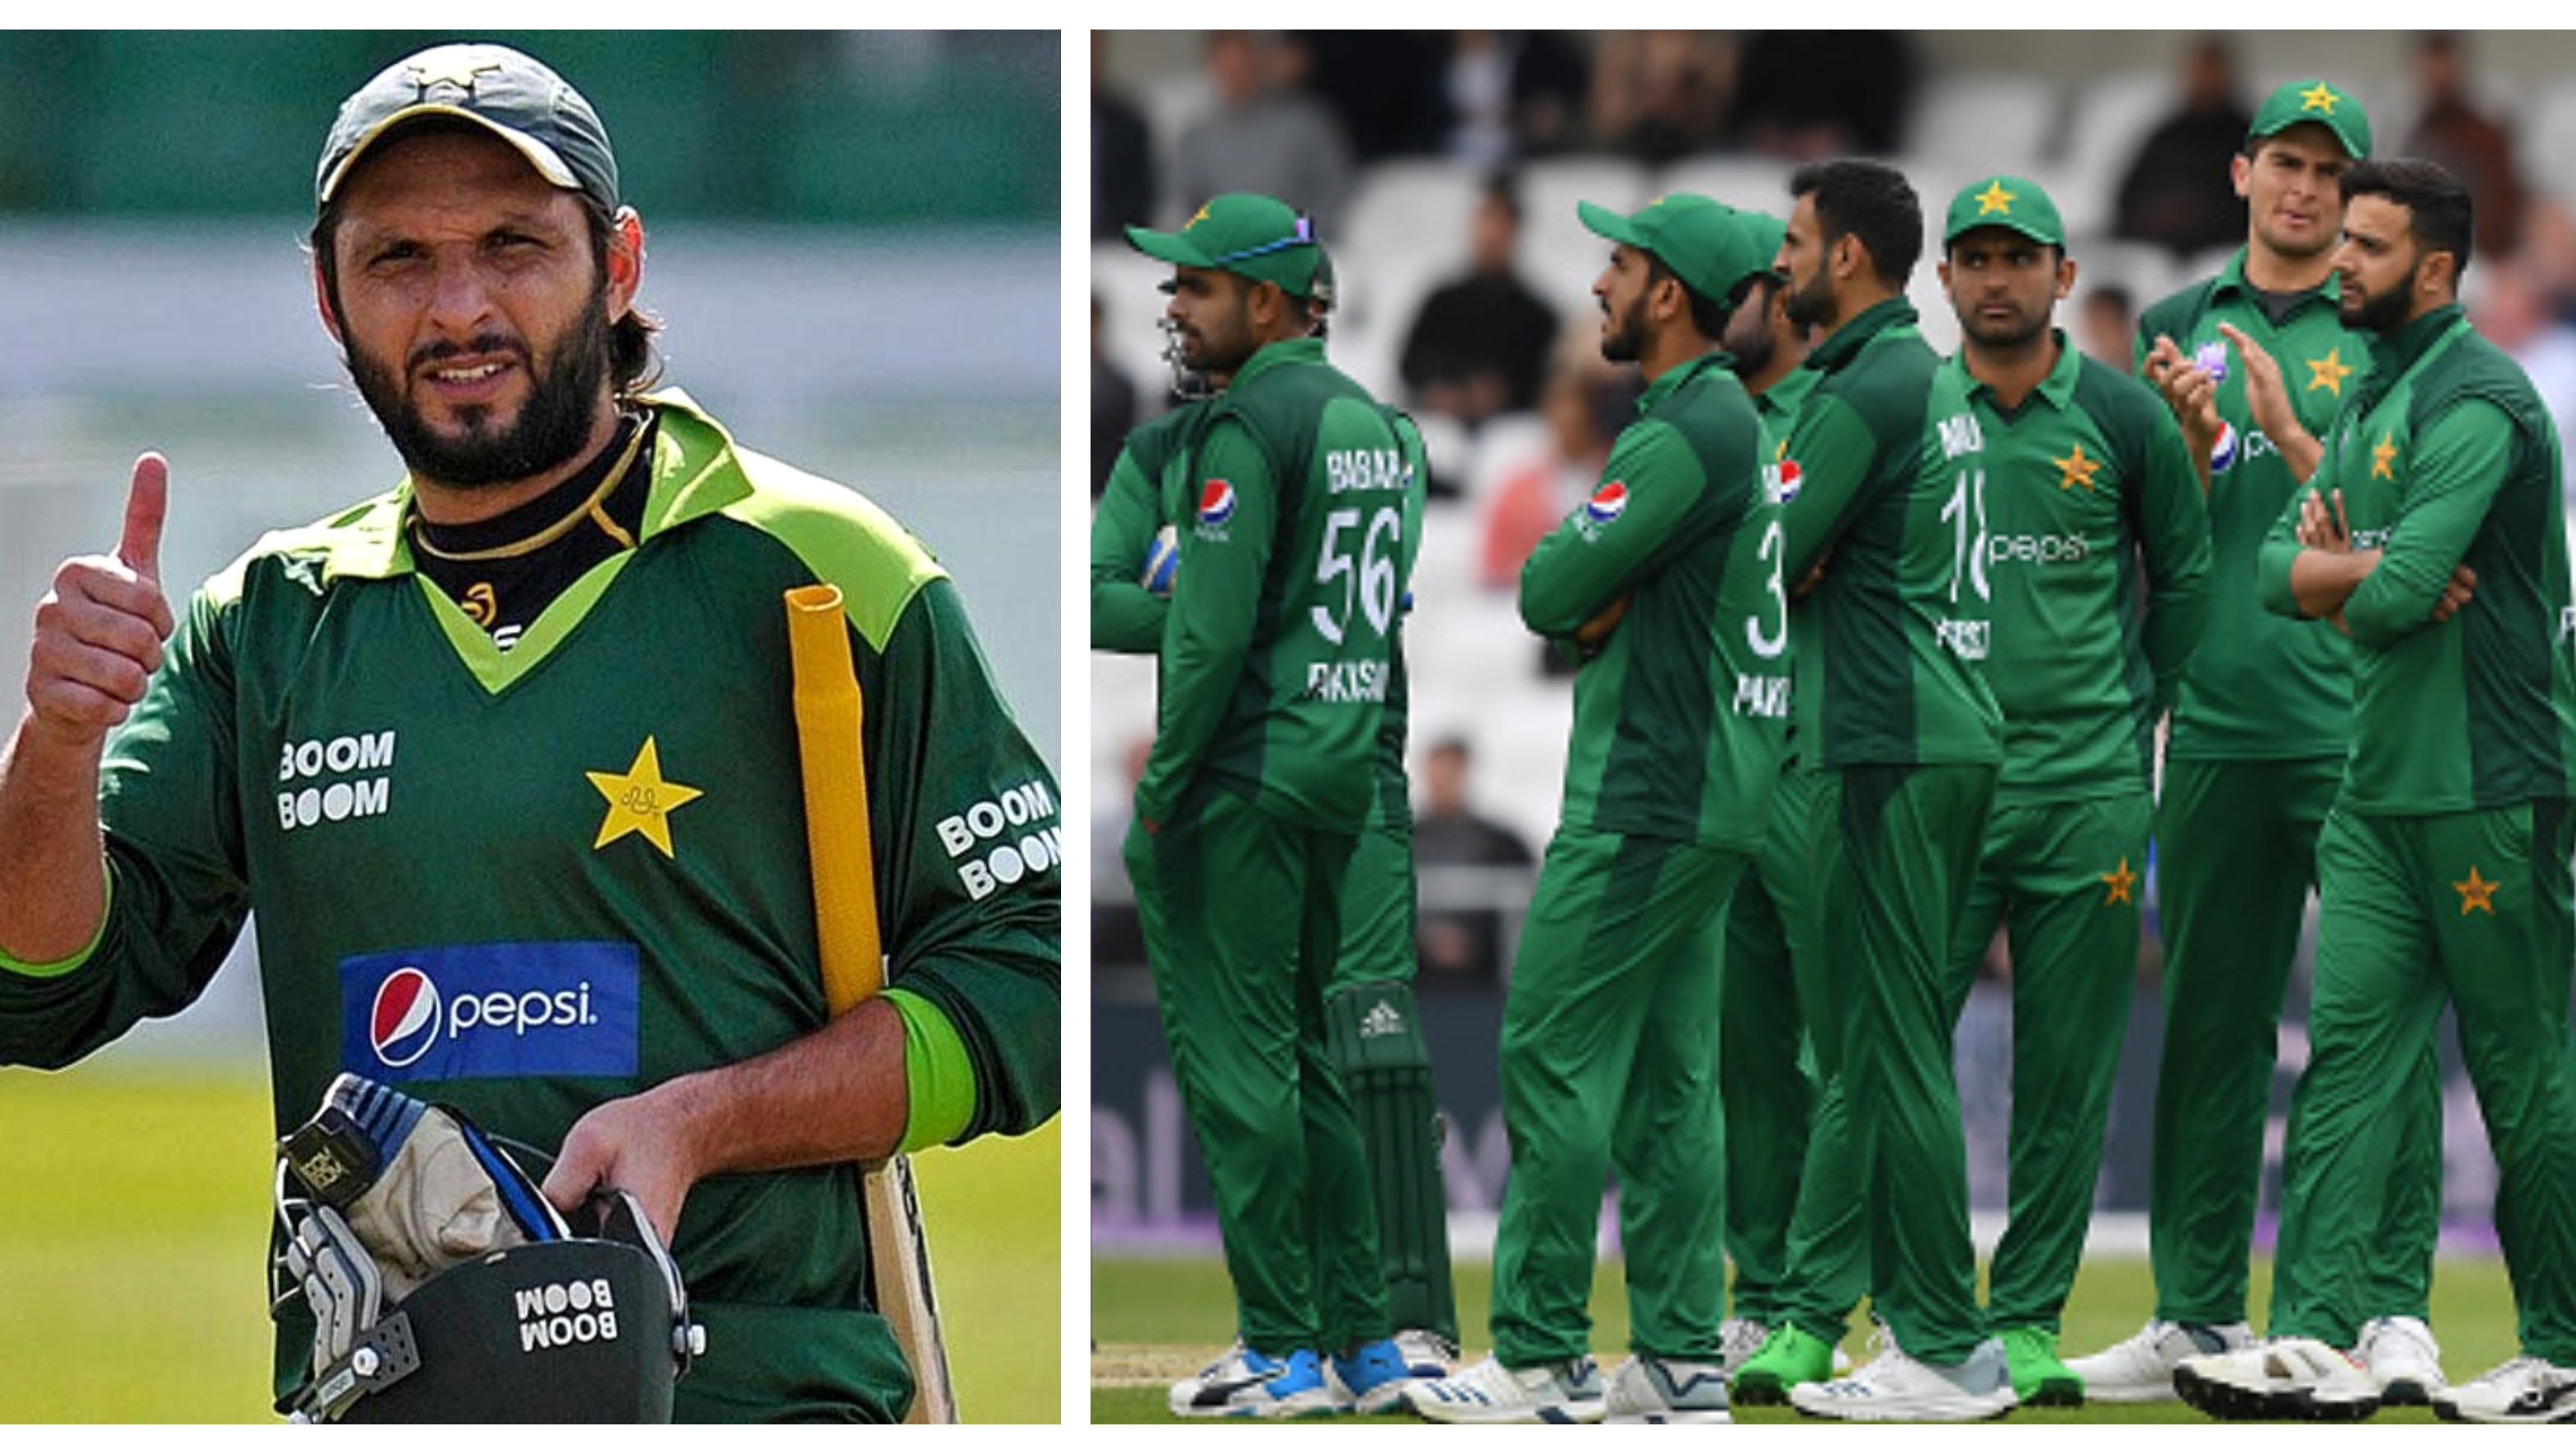 CWC 2019: Shahid Afridi backing 'well balanced' Pakistan to reach the semi-finals